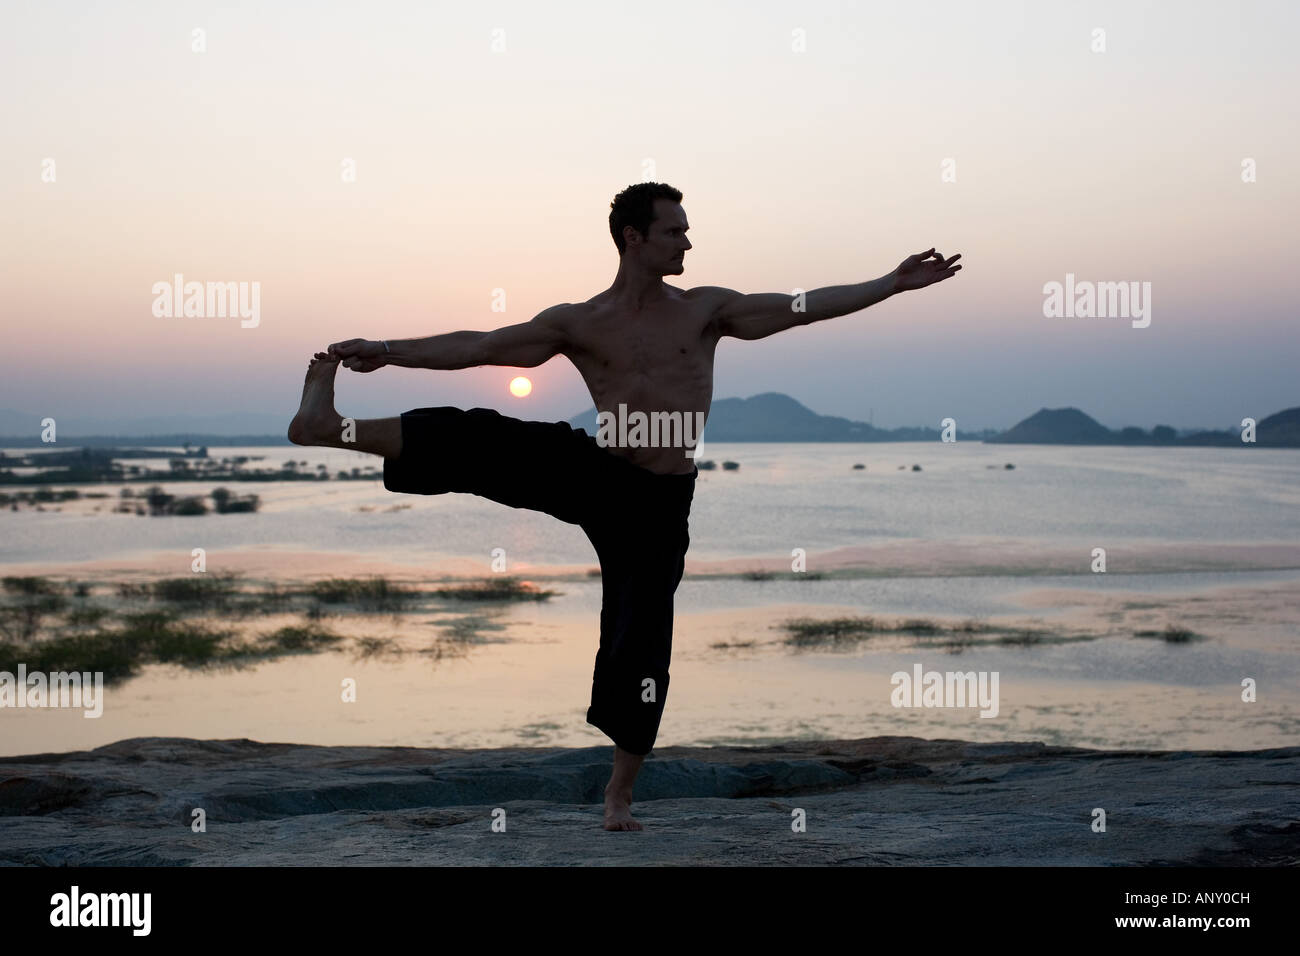 Silhouette of a man performing Hatha Yoga, utthita hasta padangusthasana, extended hand to big toe posture in India - Stock Image